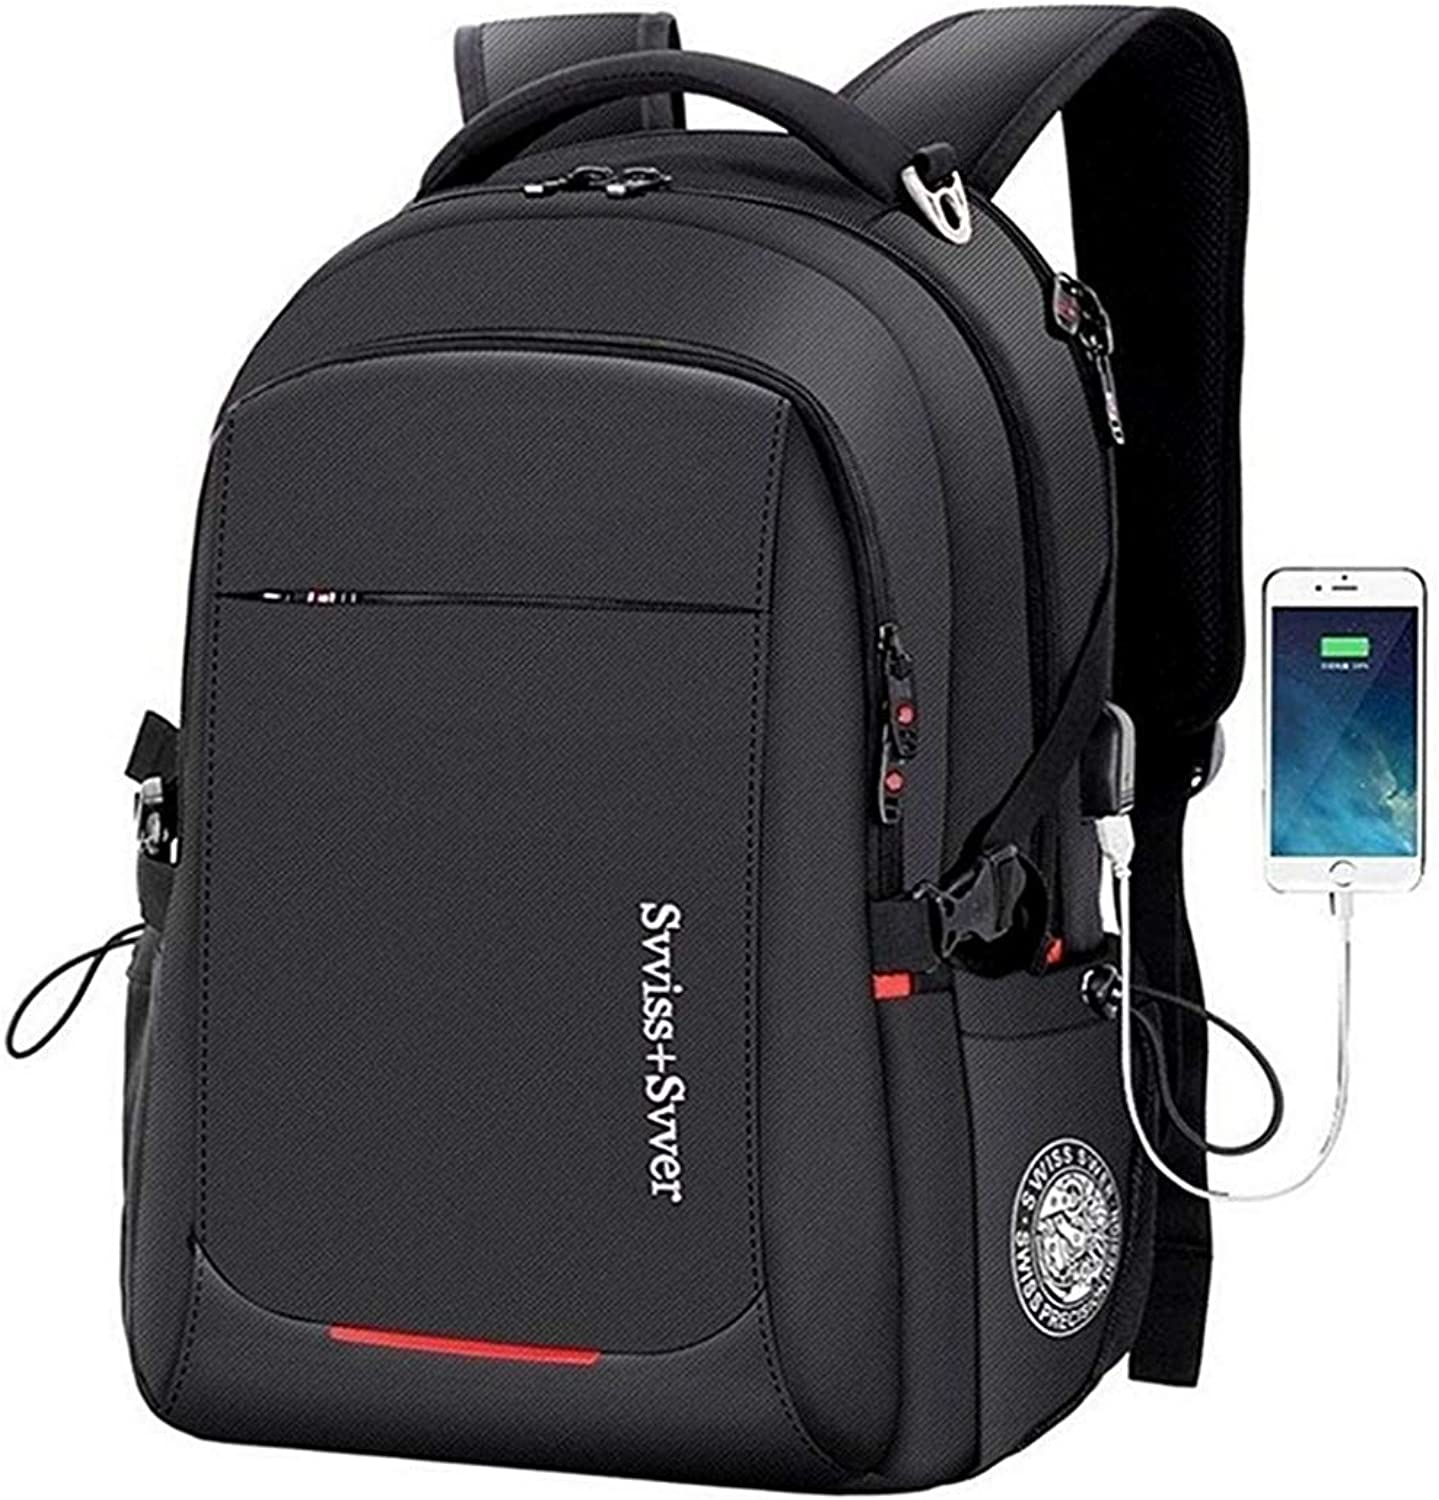 Business Laptop Backpack, Mens Travel Computer Bag 40L with USB Charging Port Fits for 15.6 Inch Notebook